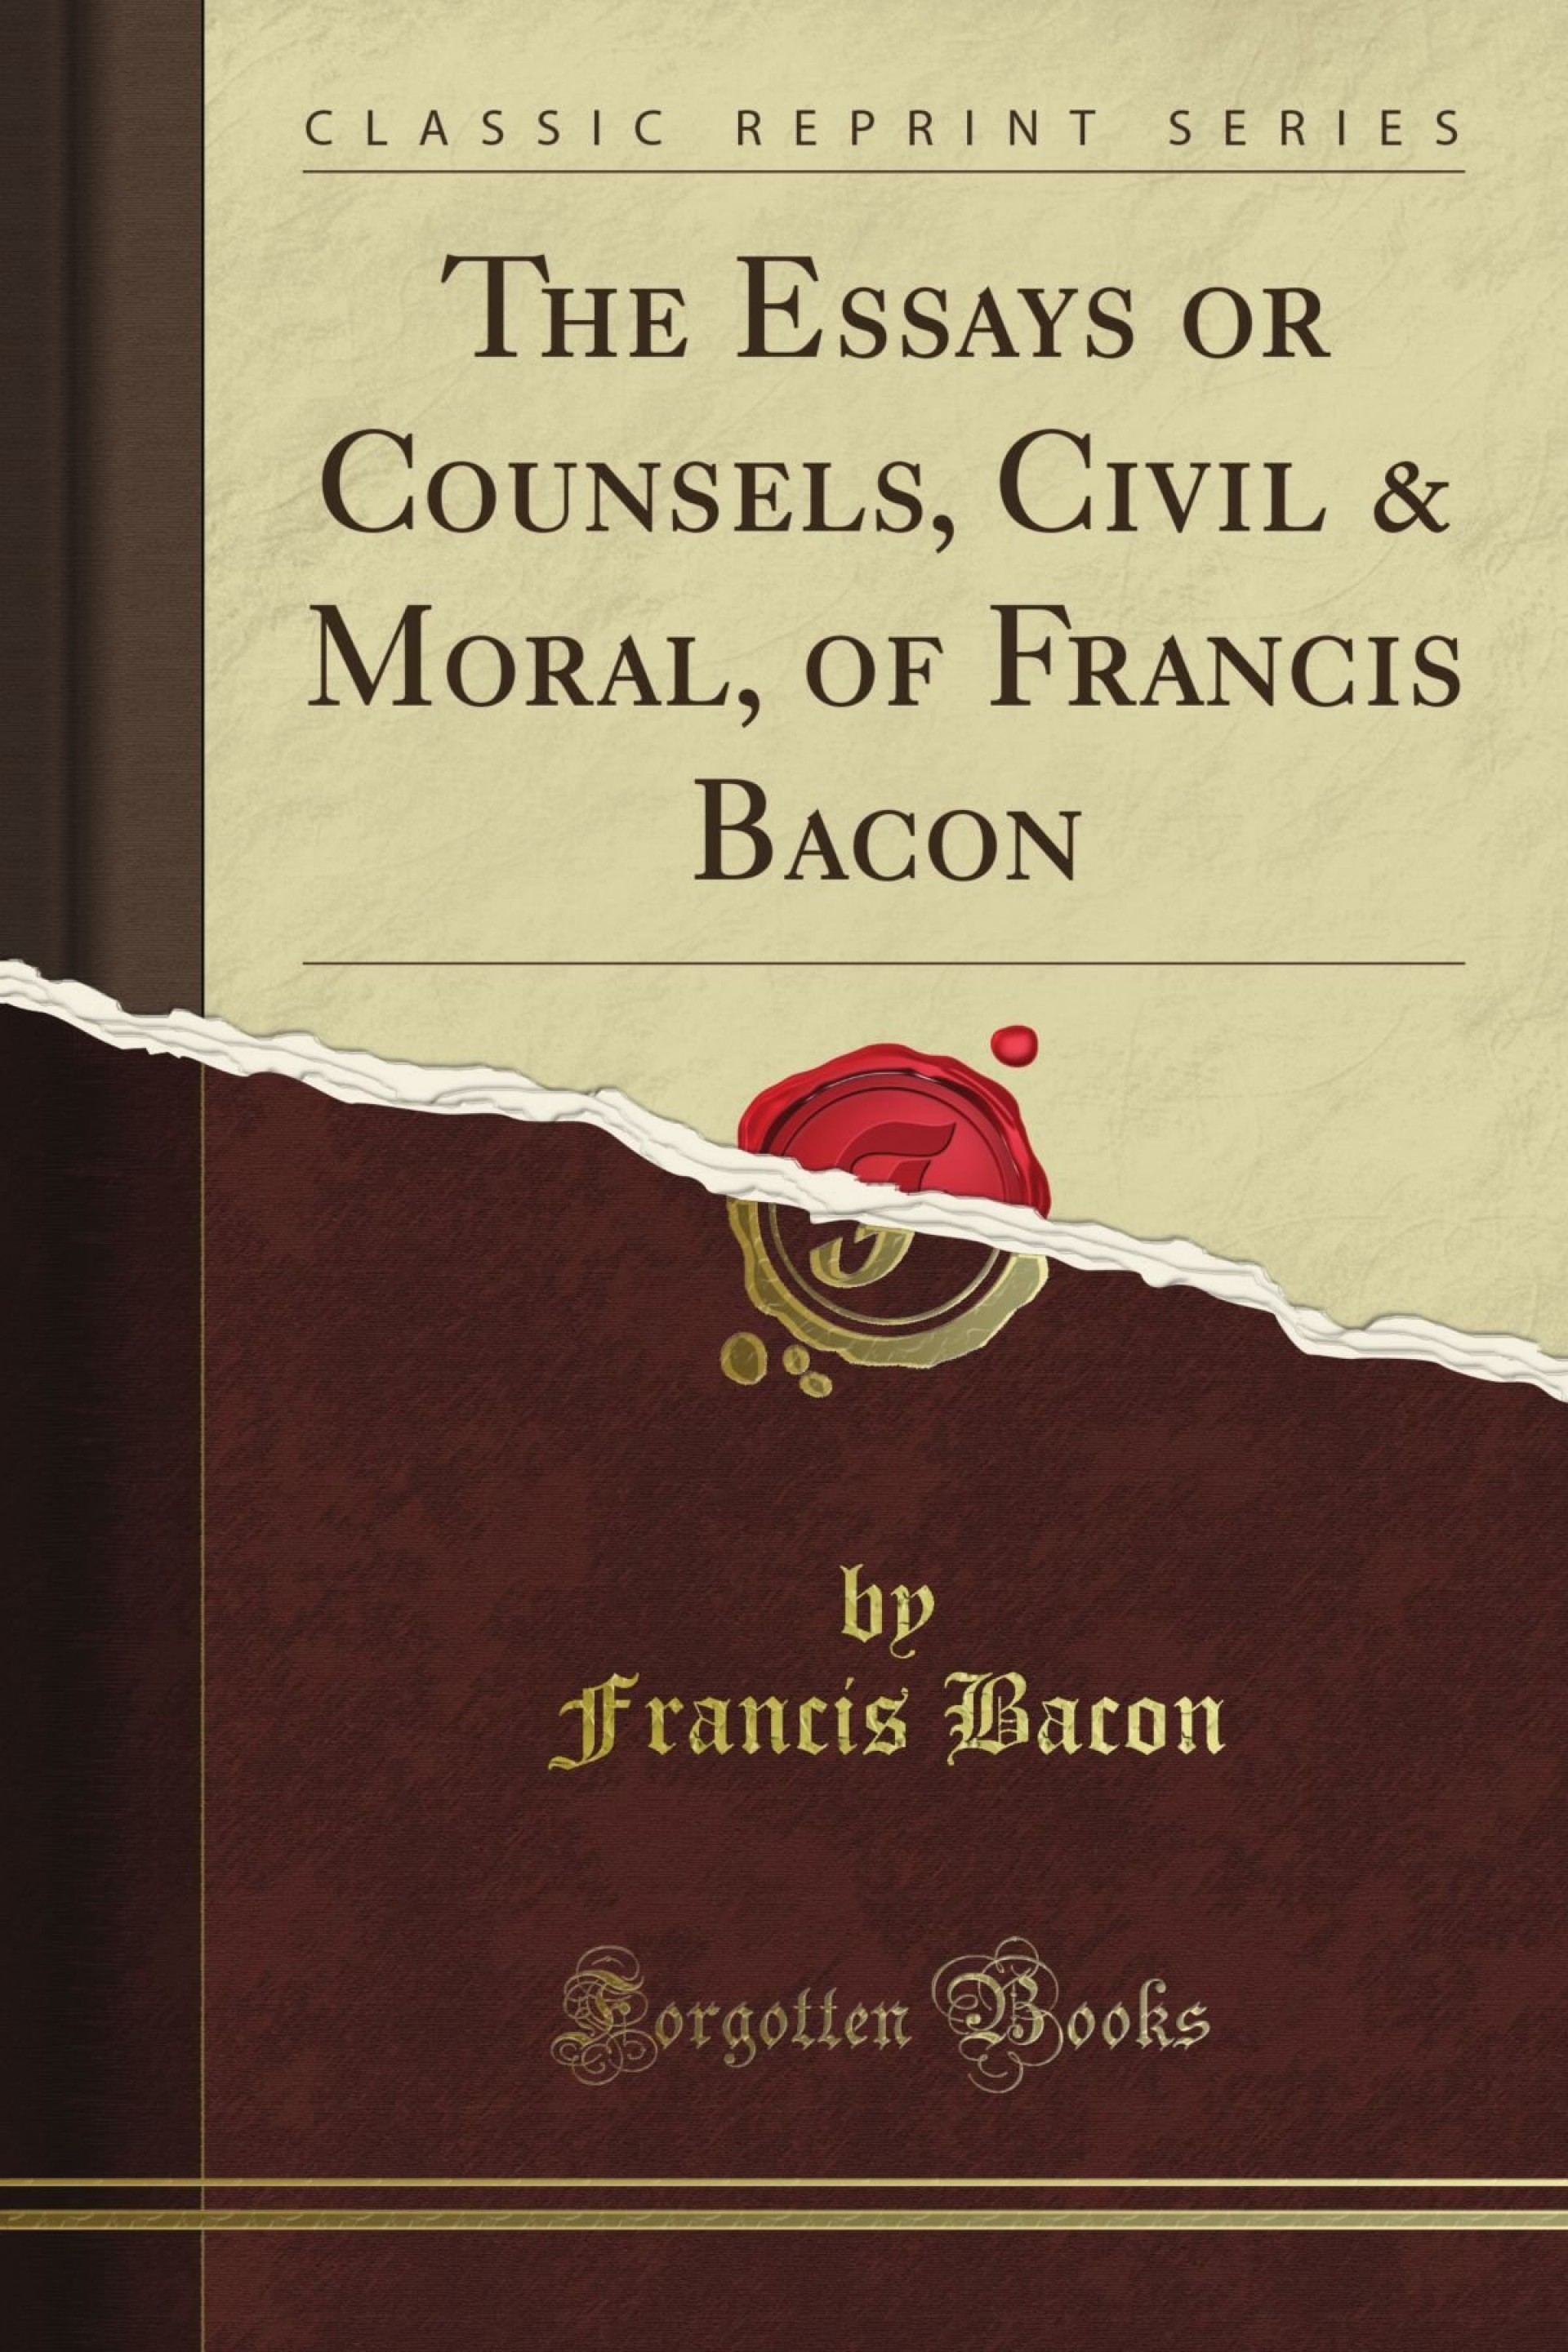 018 81jugg1lv8l Francis Bacon Essays Essay Awesome Analysis Pdf Of Truth Download Critical Appreciation Bacon's 1920